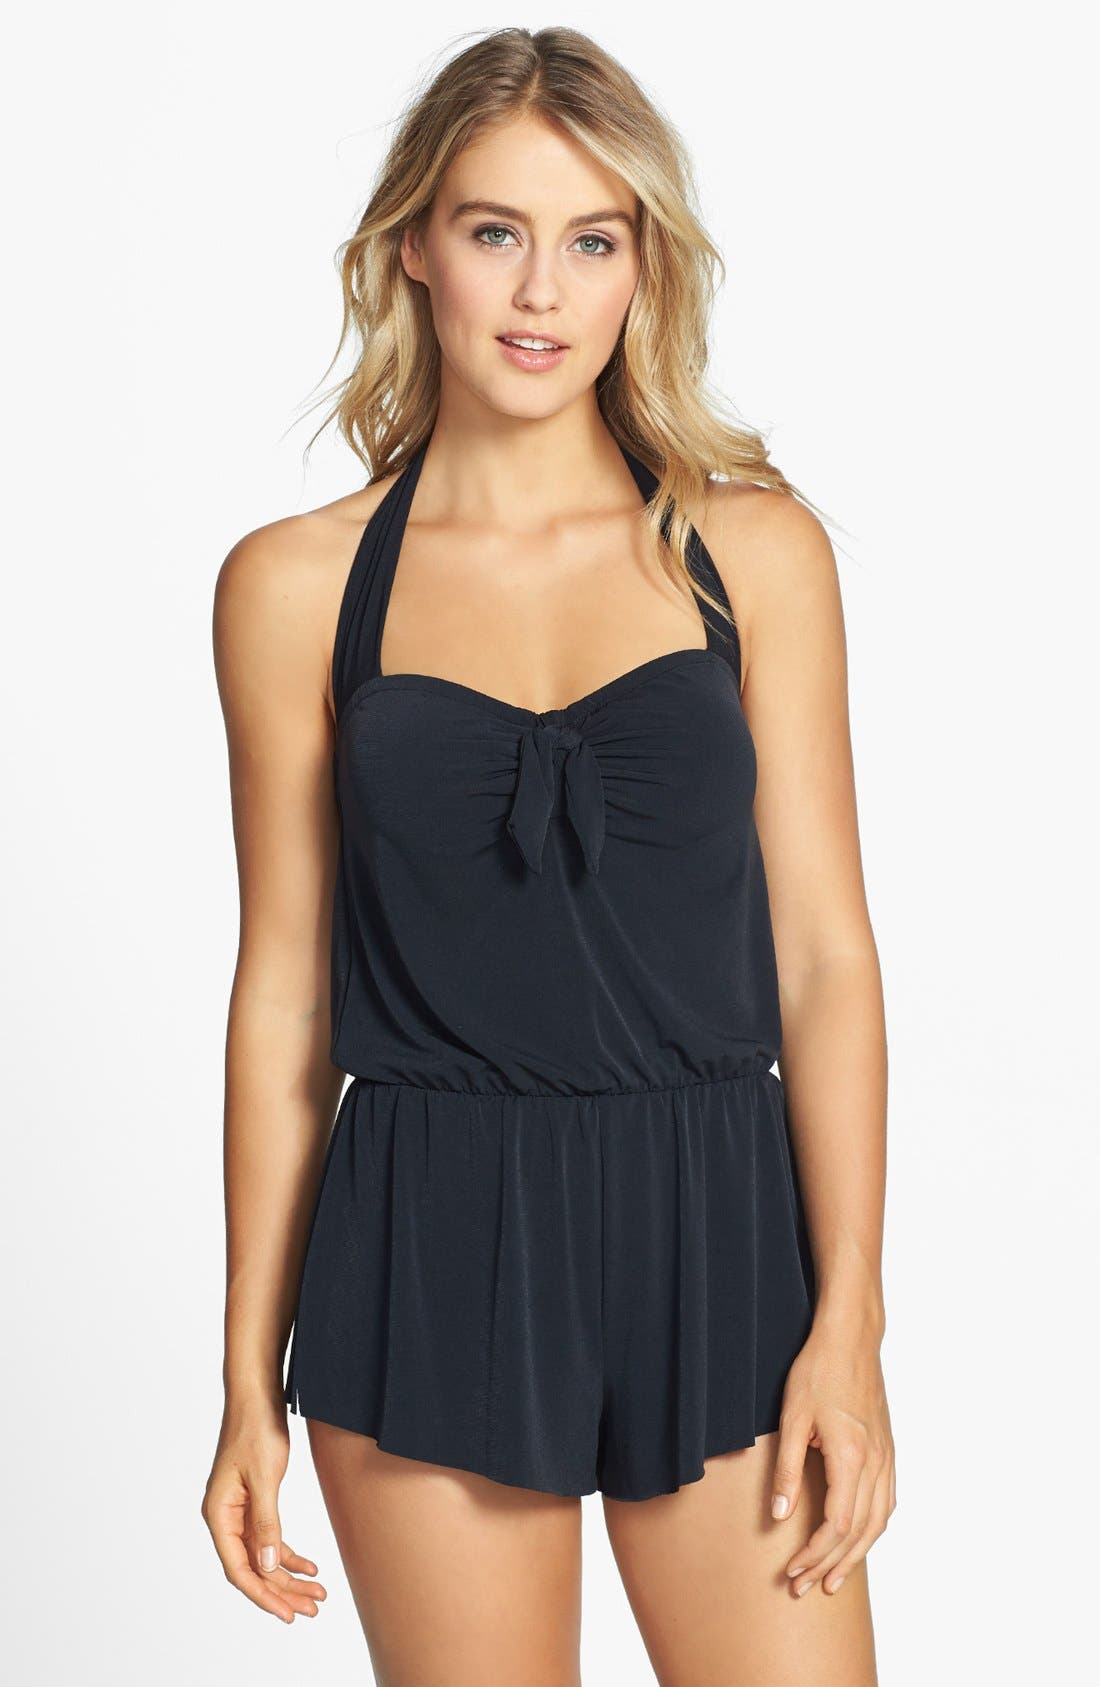 Main Image - Magic Suit by Miraclesuit® 'Romy' One-Piece Romper Swimsuit